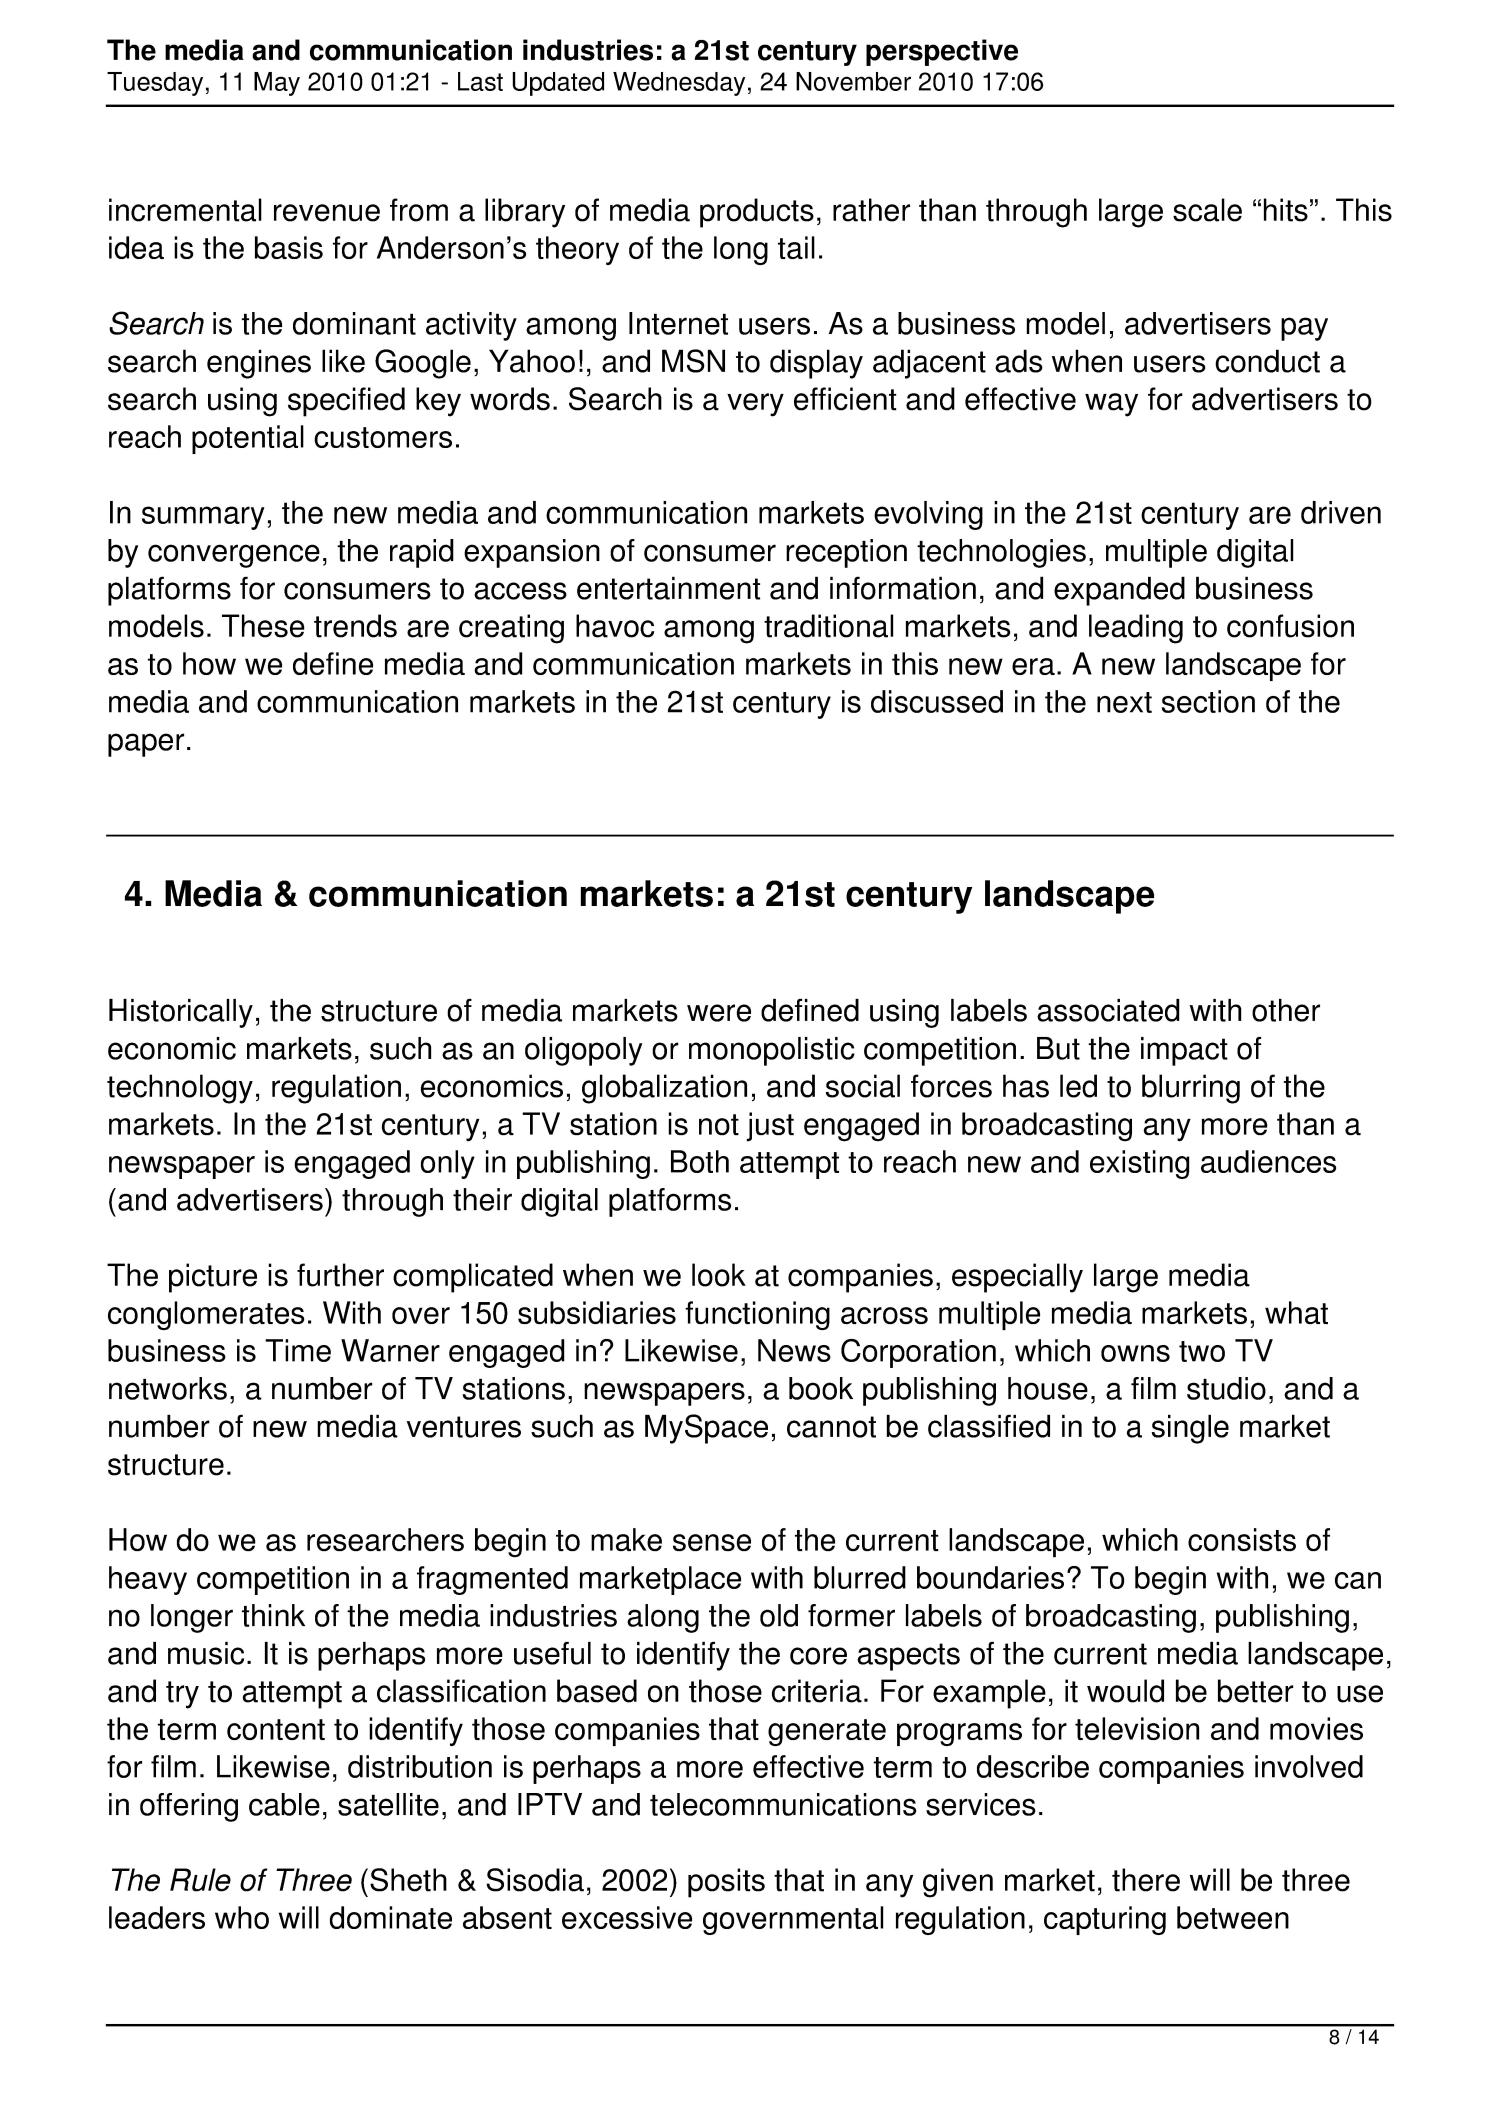 The Media and Communication Industries: A 21st Century